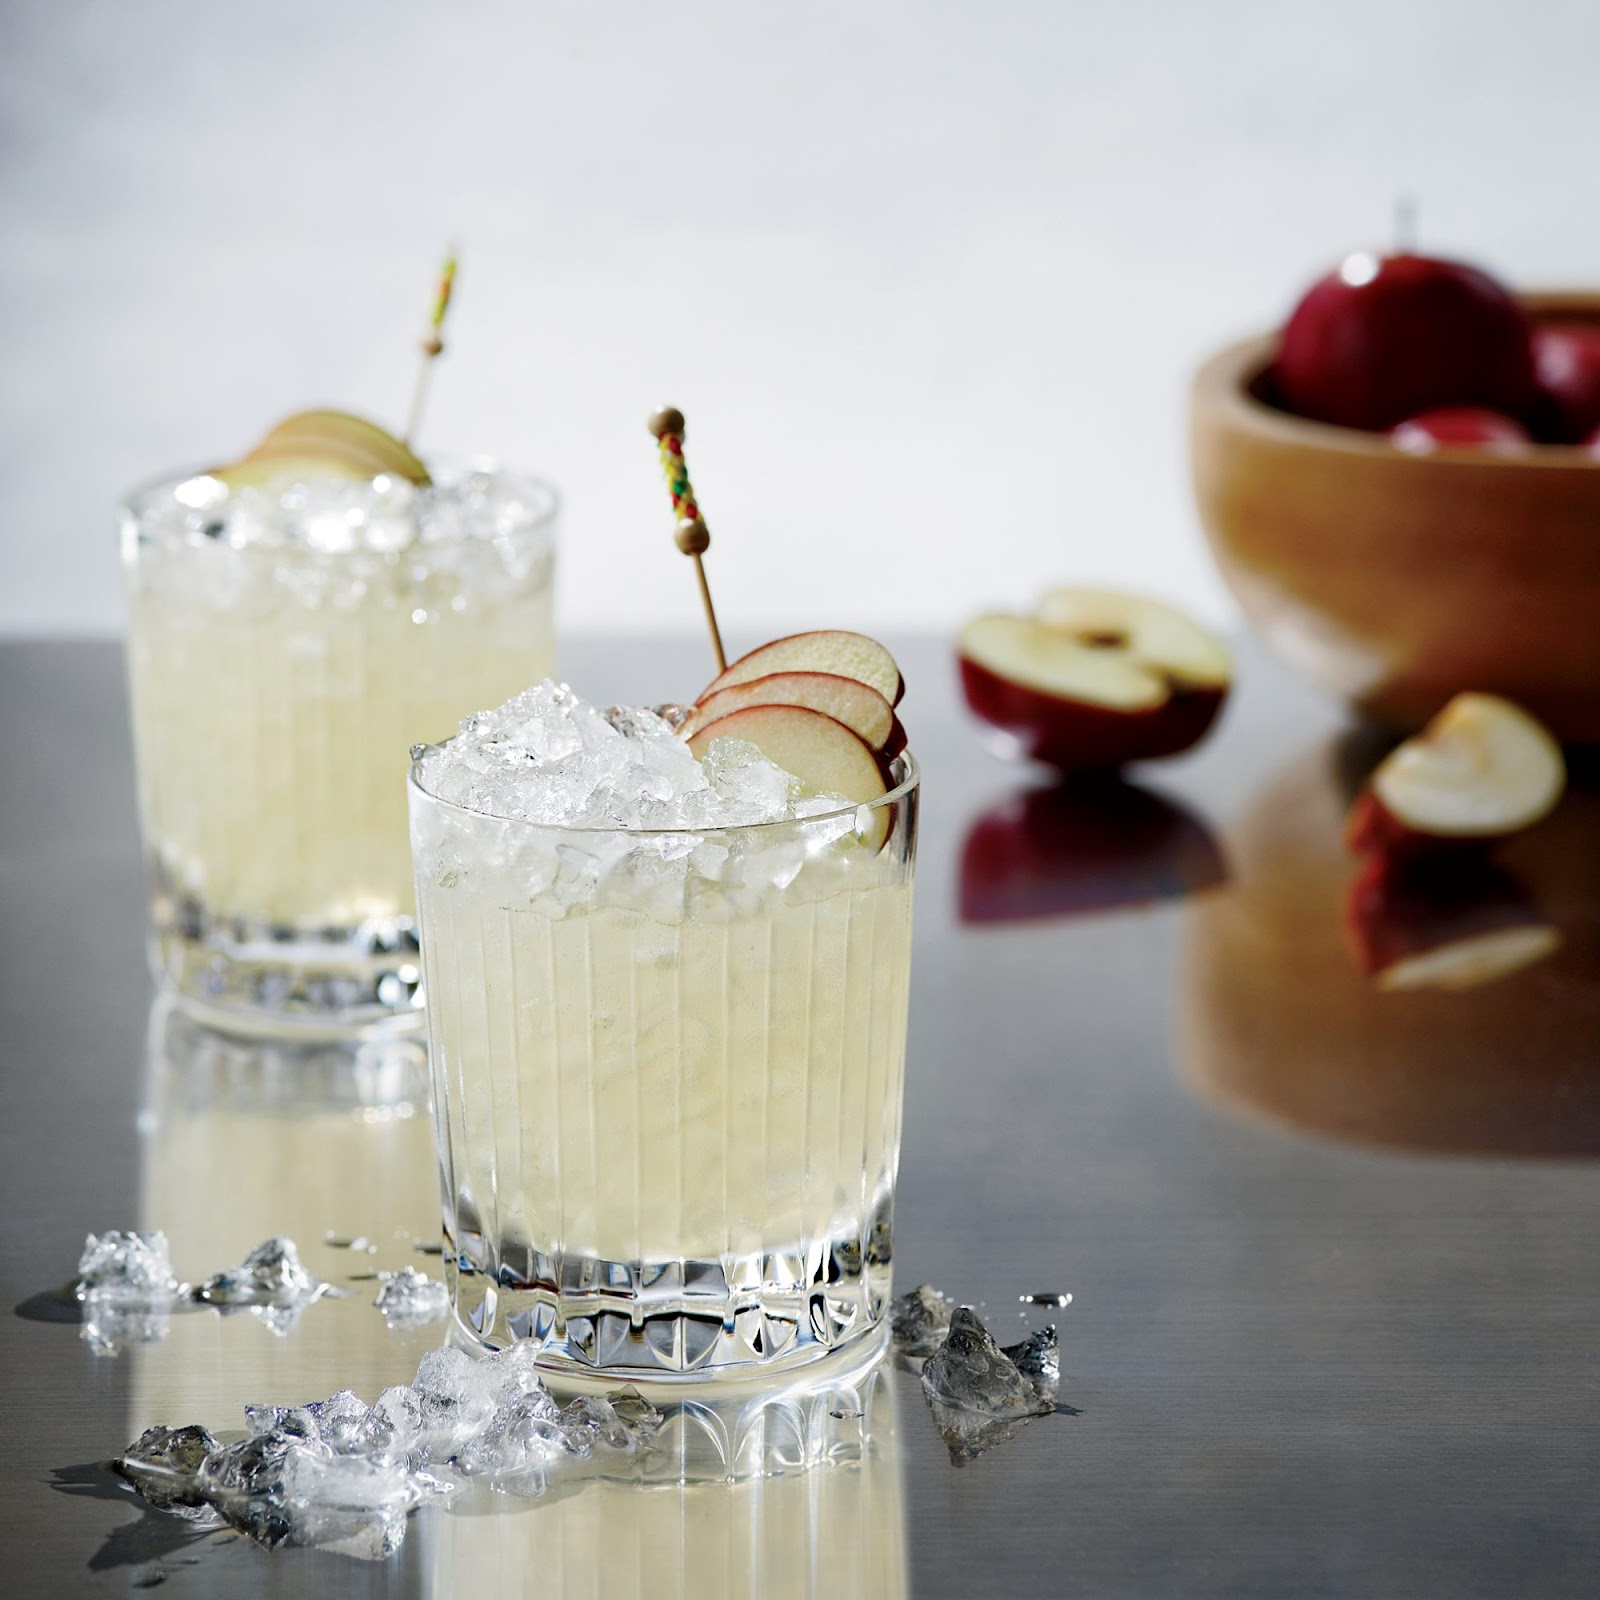 2 Orchard Mai Thai mocktails in rocks glasses with crushed ice & apple garnishes with bowl of apples in background